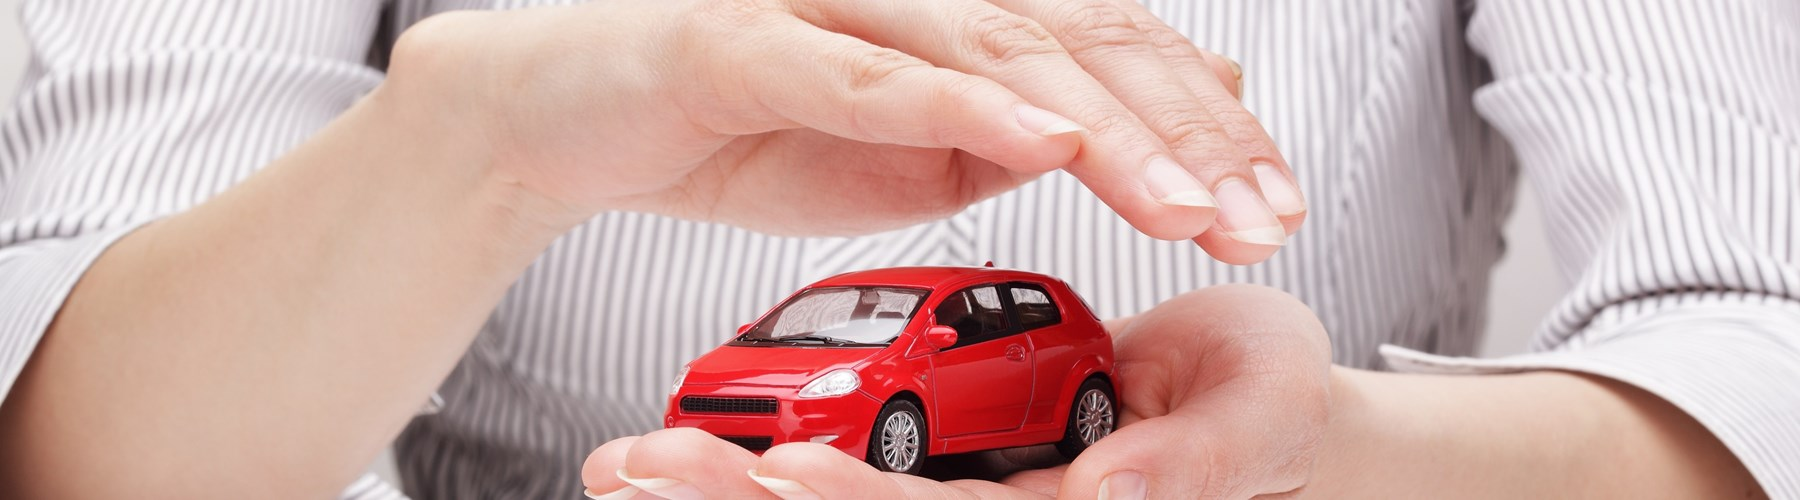 Red toy car held and covered by a woman's hands